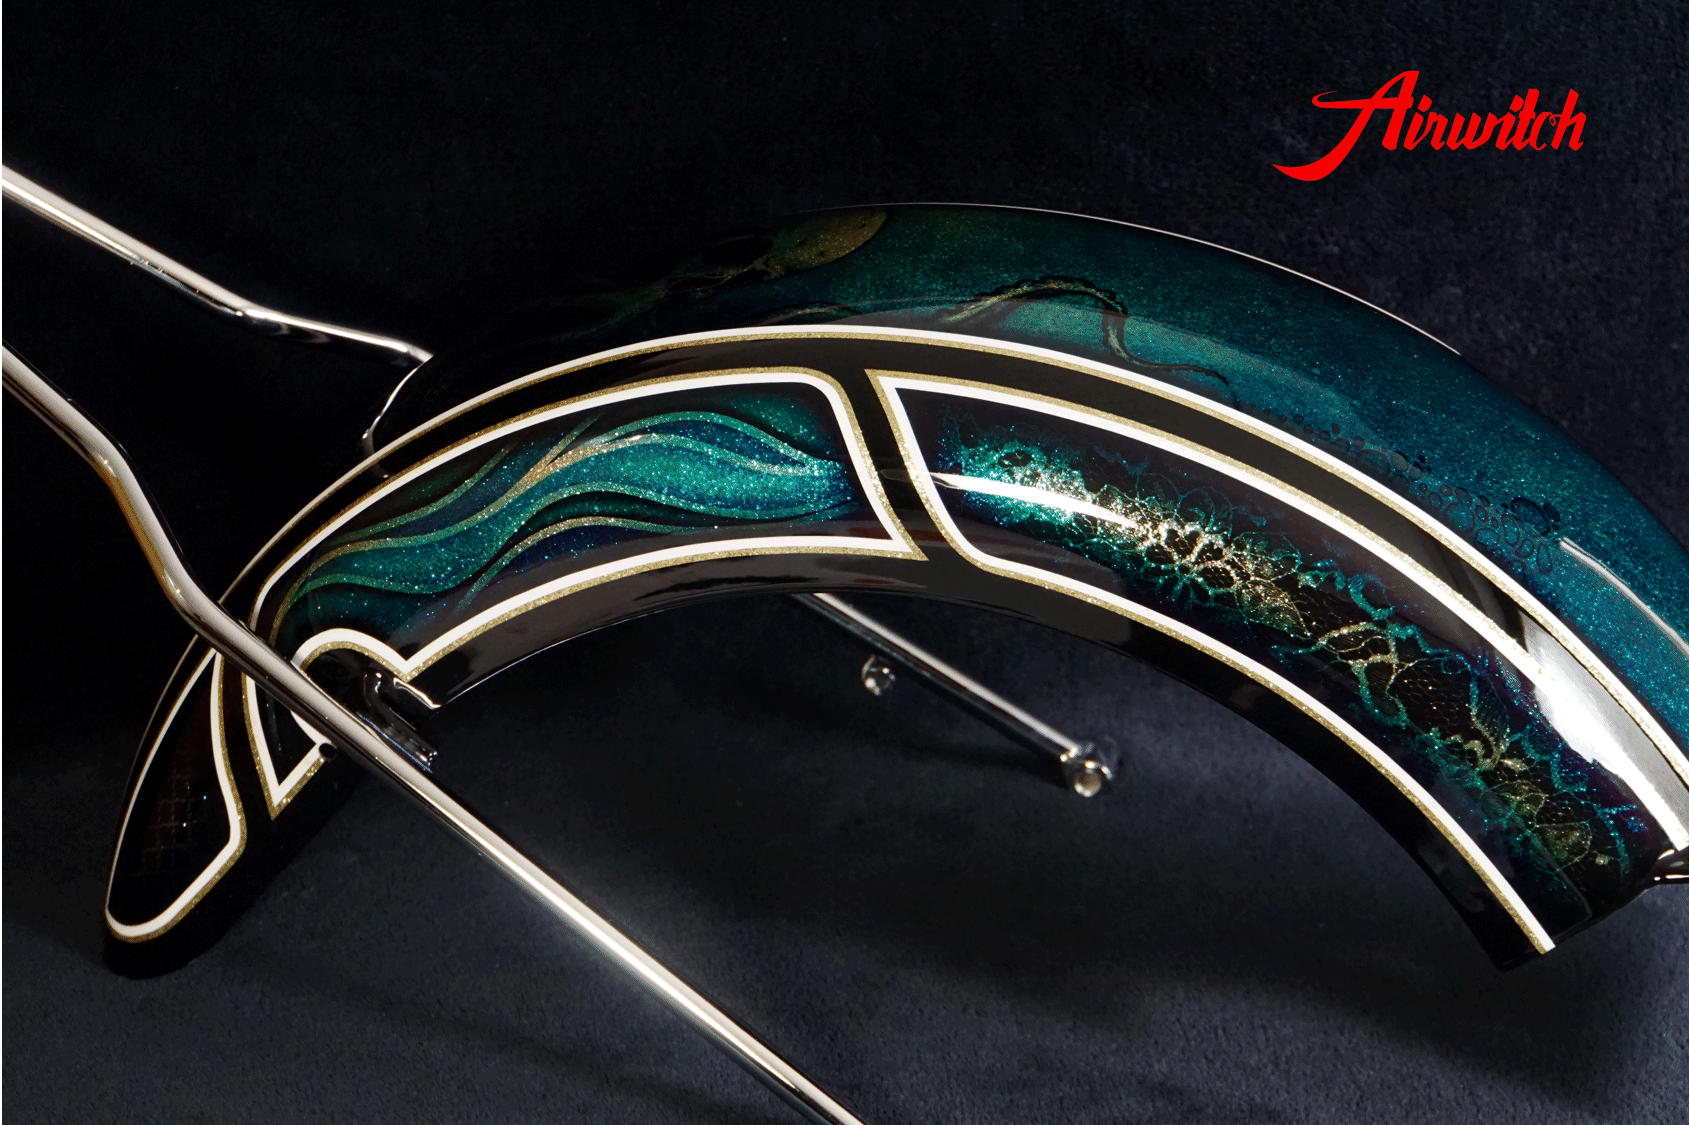 Custom Paint Fender Harley Davidson Softail Metalflake Lackierung oldschool frisco pattern blue gold black turquoise